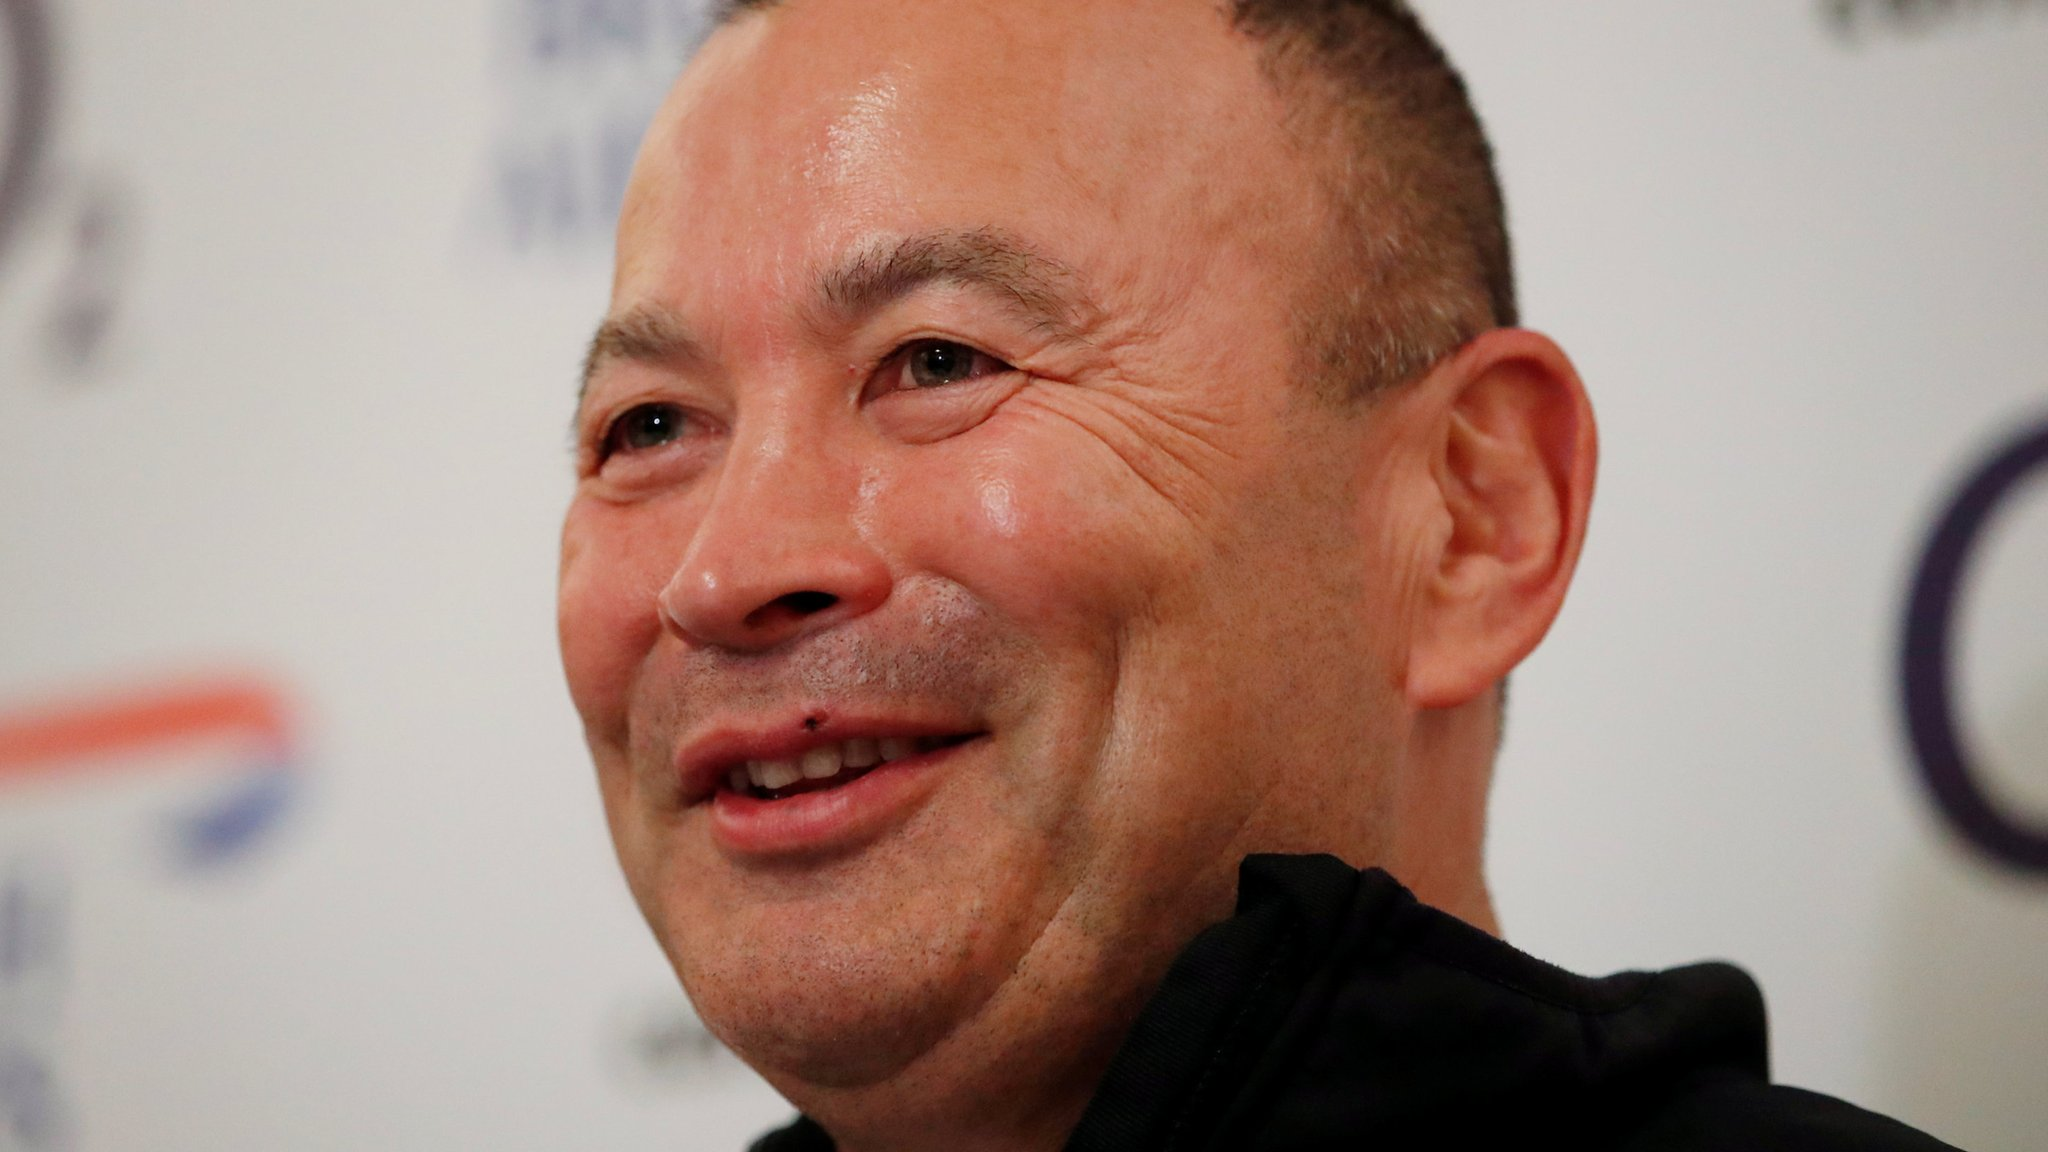 Rugby World Cup 2019: England coach Eddie Jones will use Japan game to get squad pointers